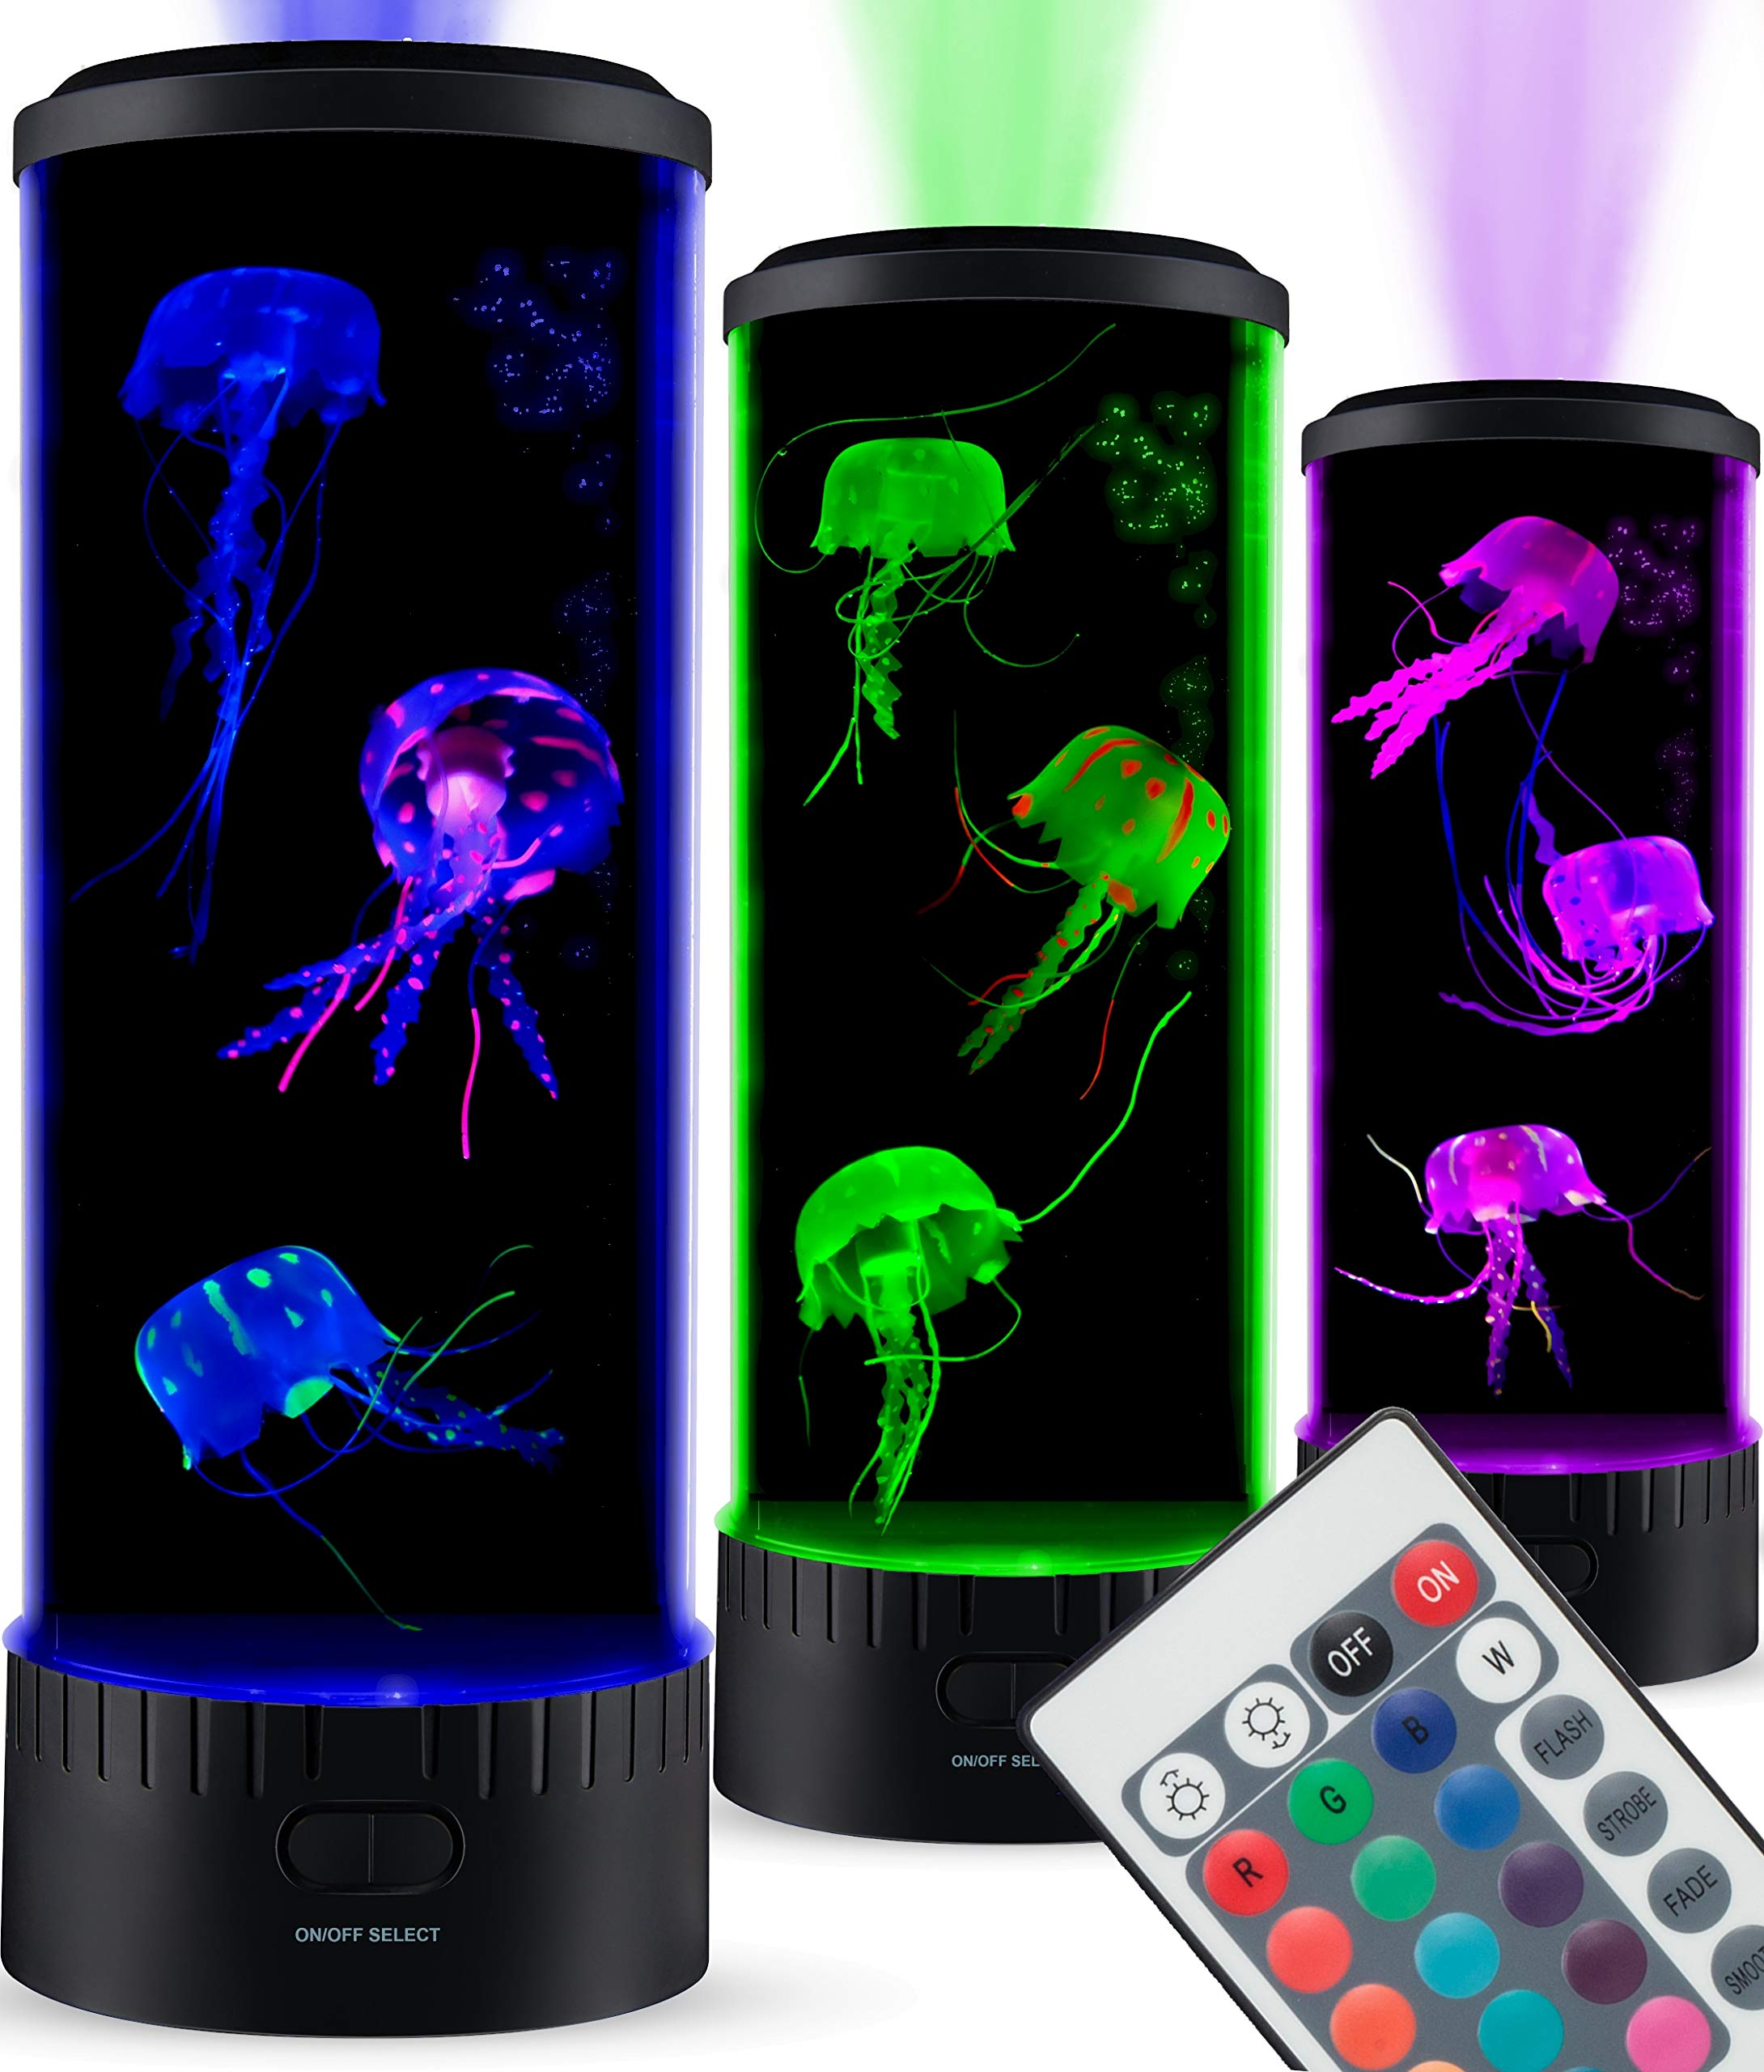 SensoryMoon Large LED Jellyfish Lava Lamp Aquarium - Electric Round Jellyfish Tank Mood Light with 3 Fake Glowing Jelly Fish, 20 Color Changing Remote, Ocean Wave Projector - Plug in Kids Night Light by SensoryMoon